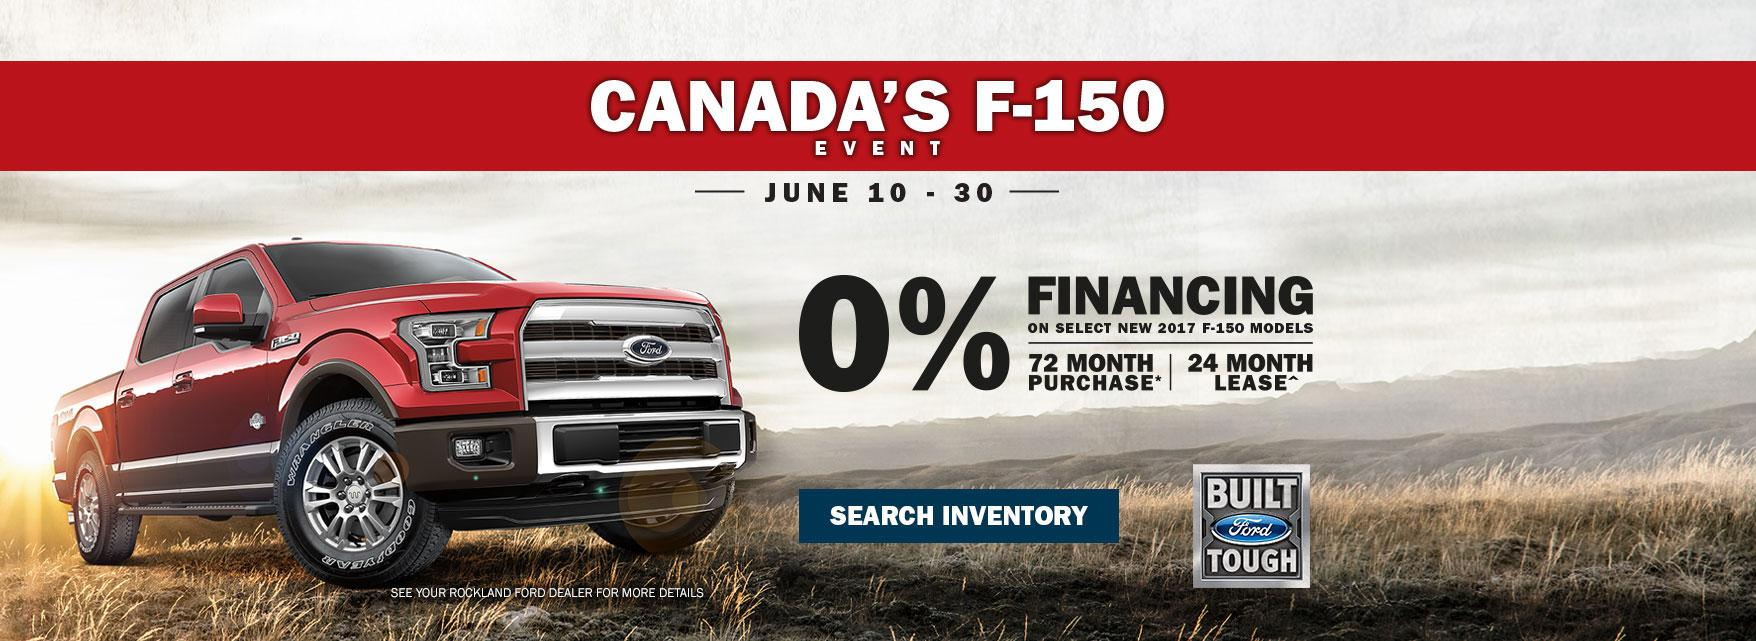 F-150 Rockland Ford